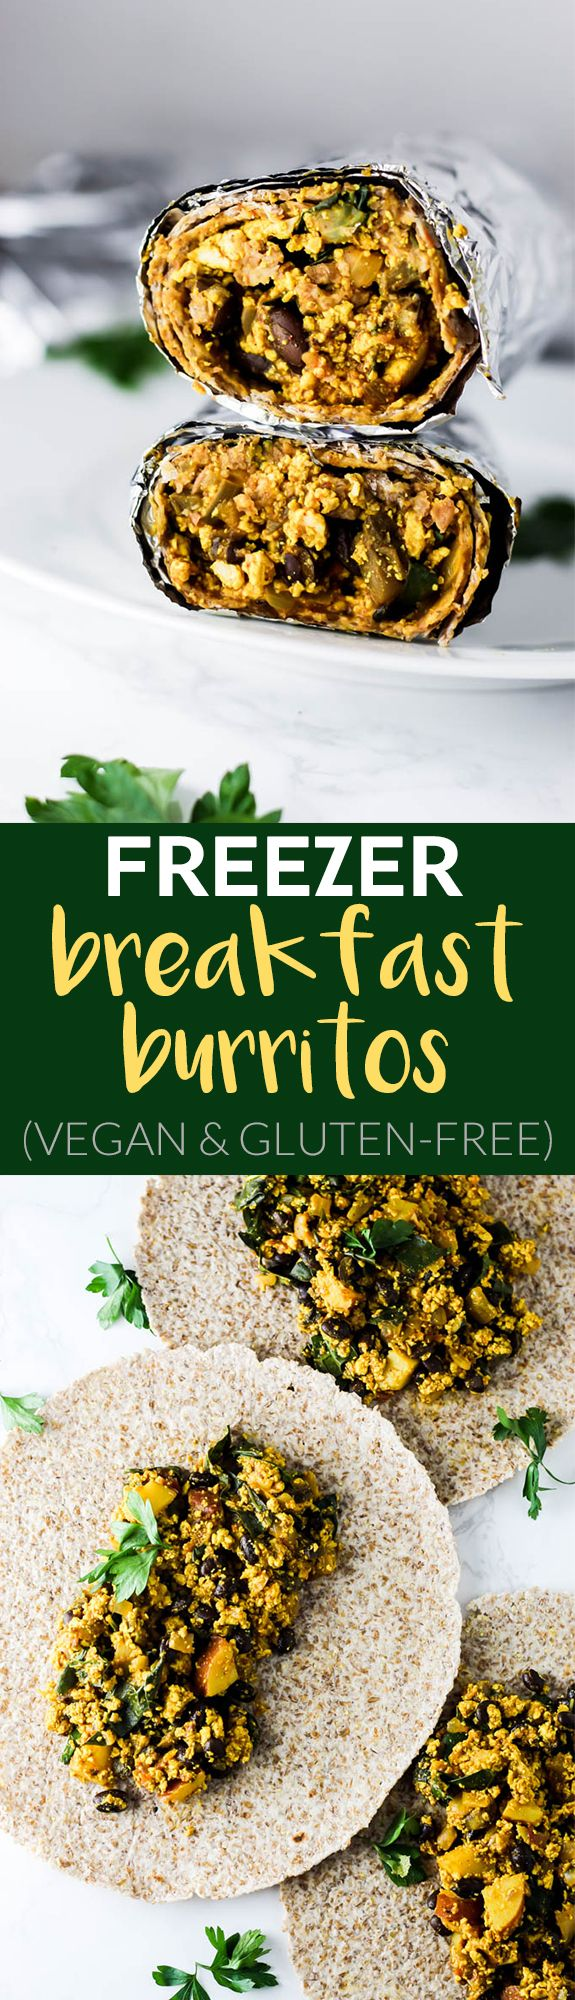 Save time in the morning by grabbing a prepped Vegan Breakfast Burrito from the freezer! It's full of protein to keep you satisfied during busy mornings.